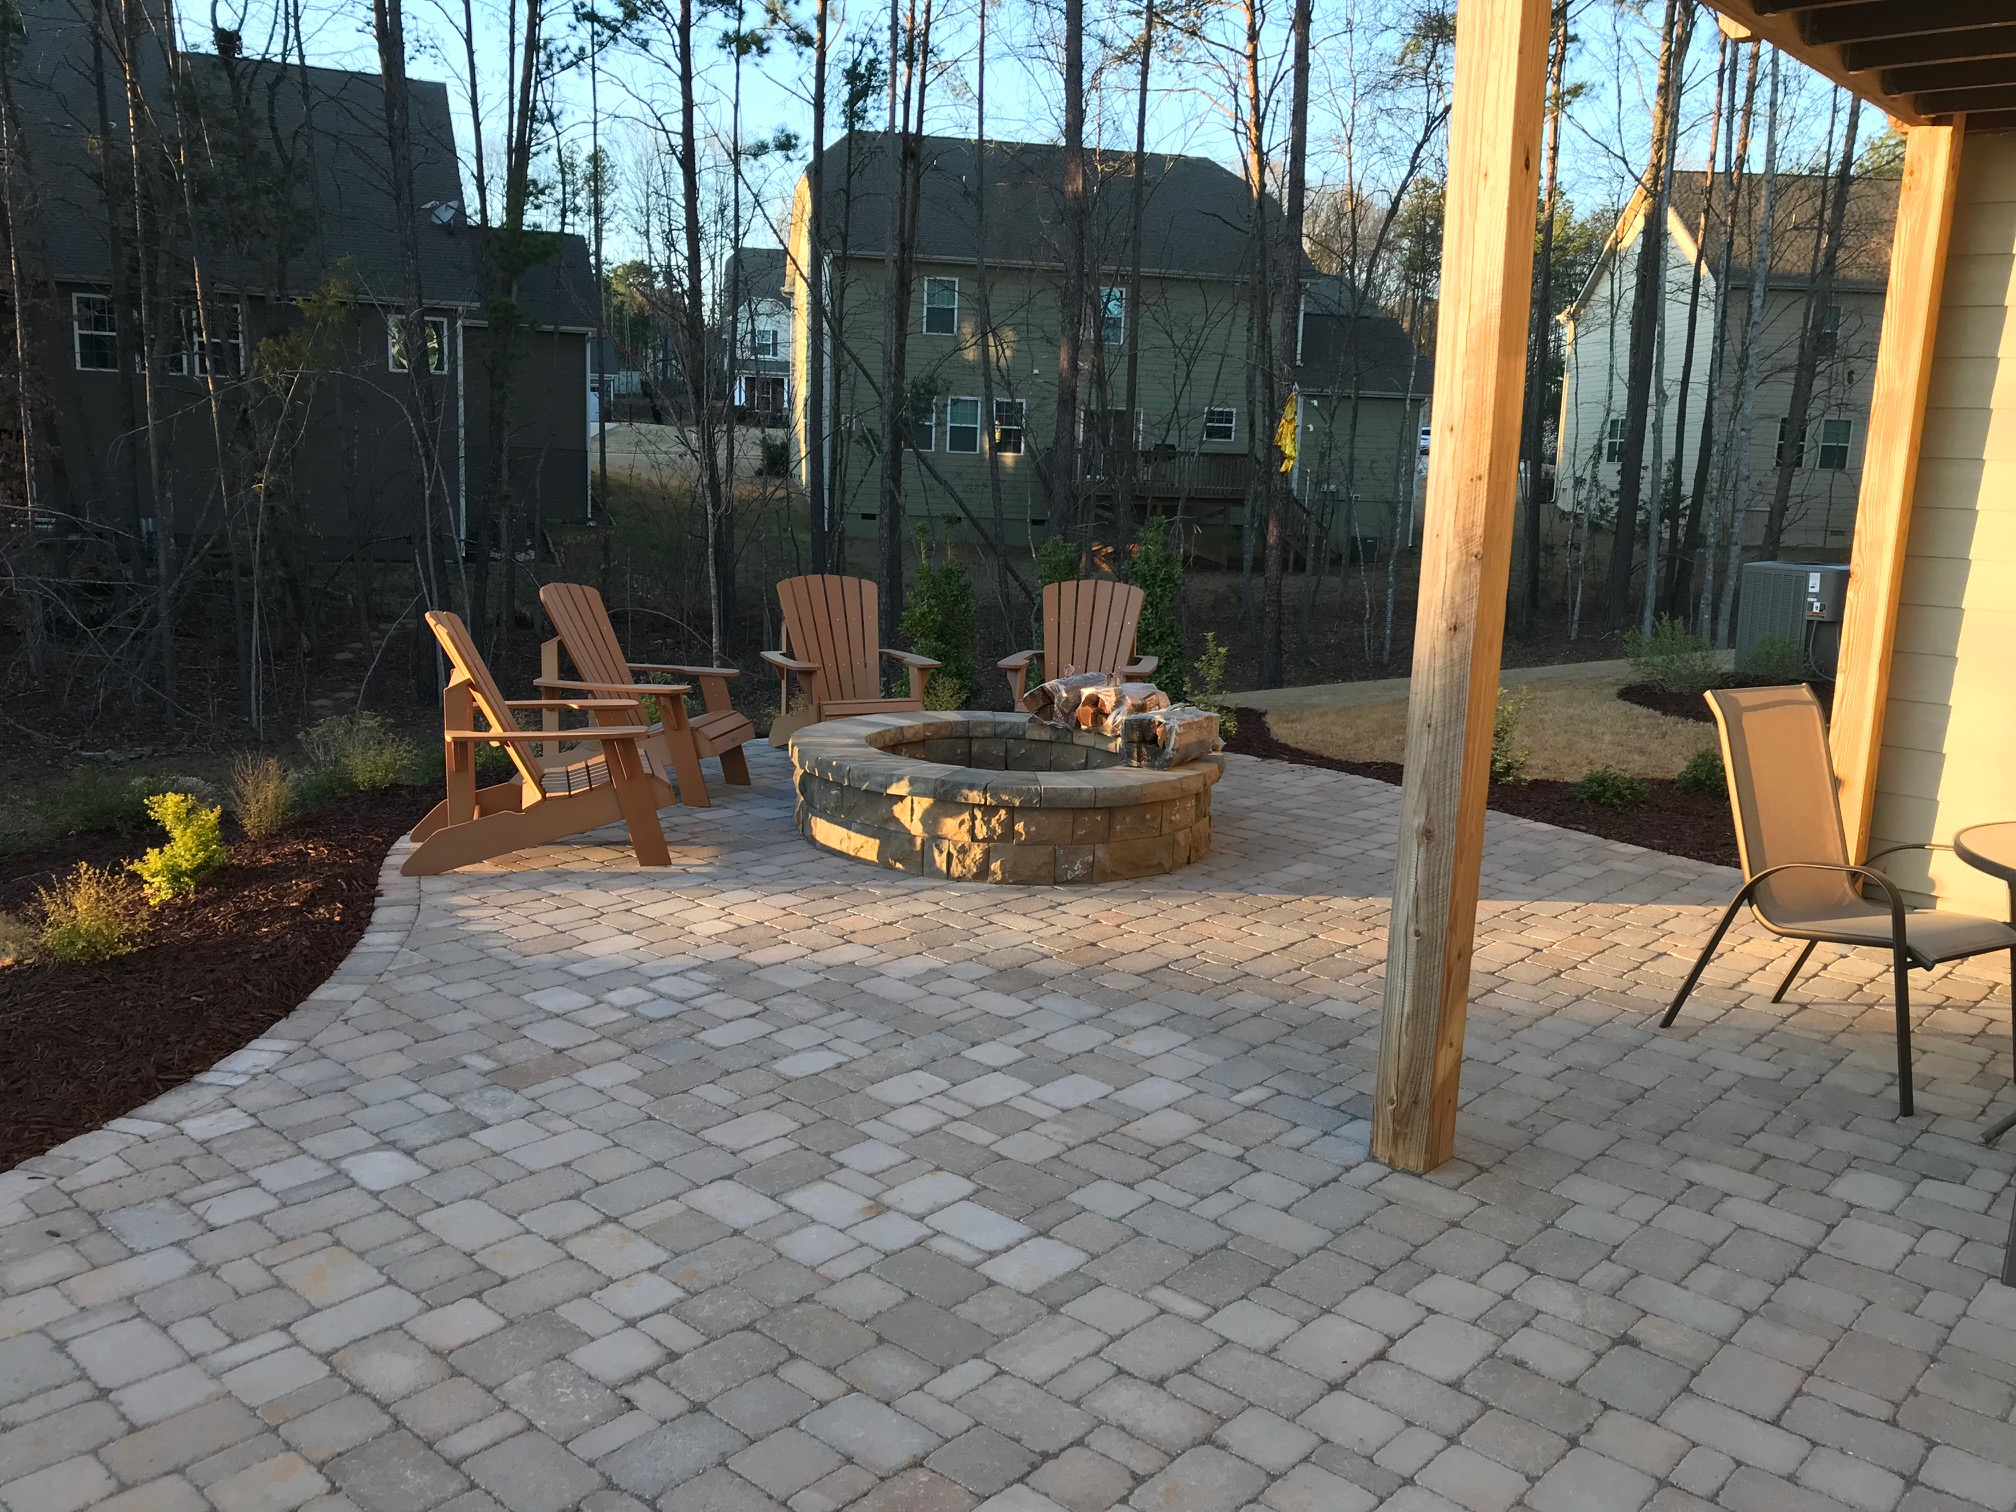 A Belgard Paver Patio, Fire Pit And Landscaping